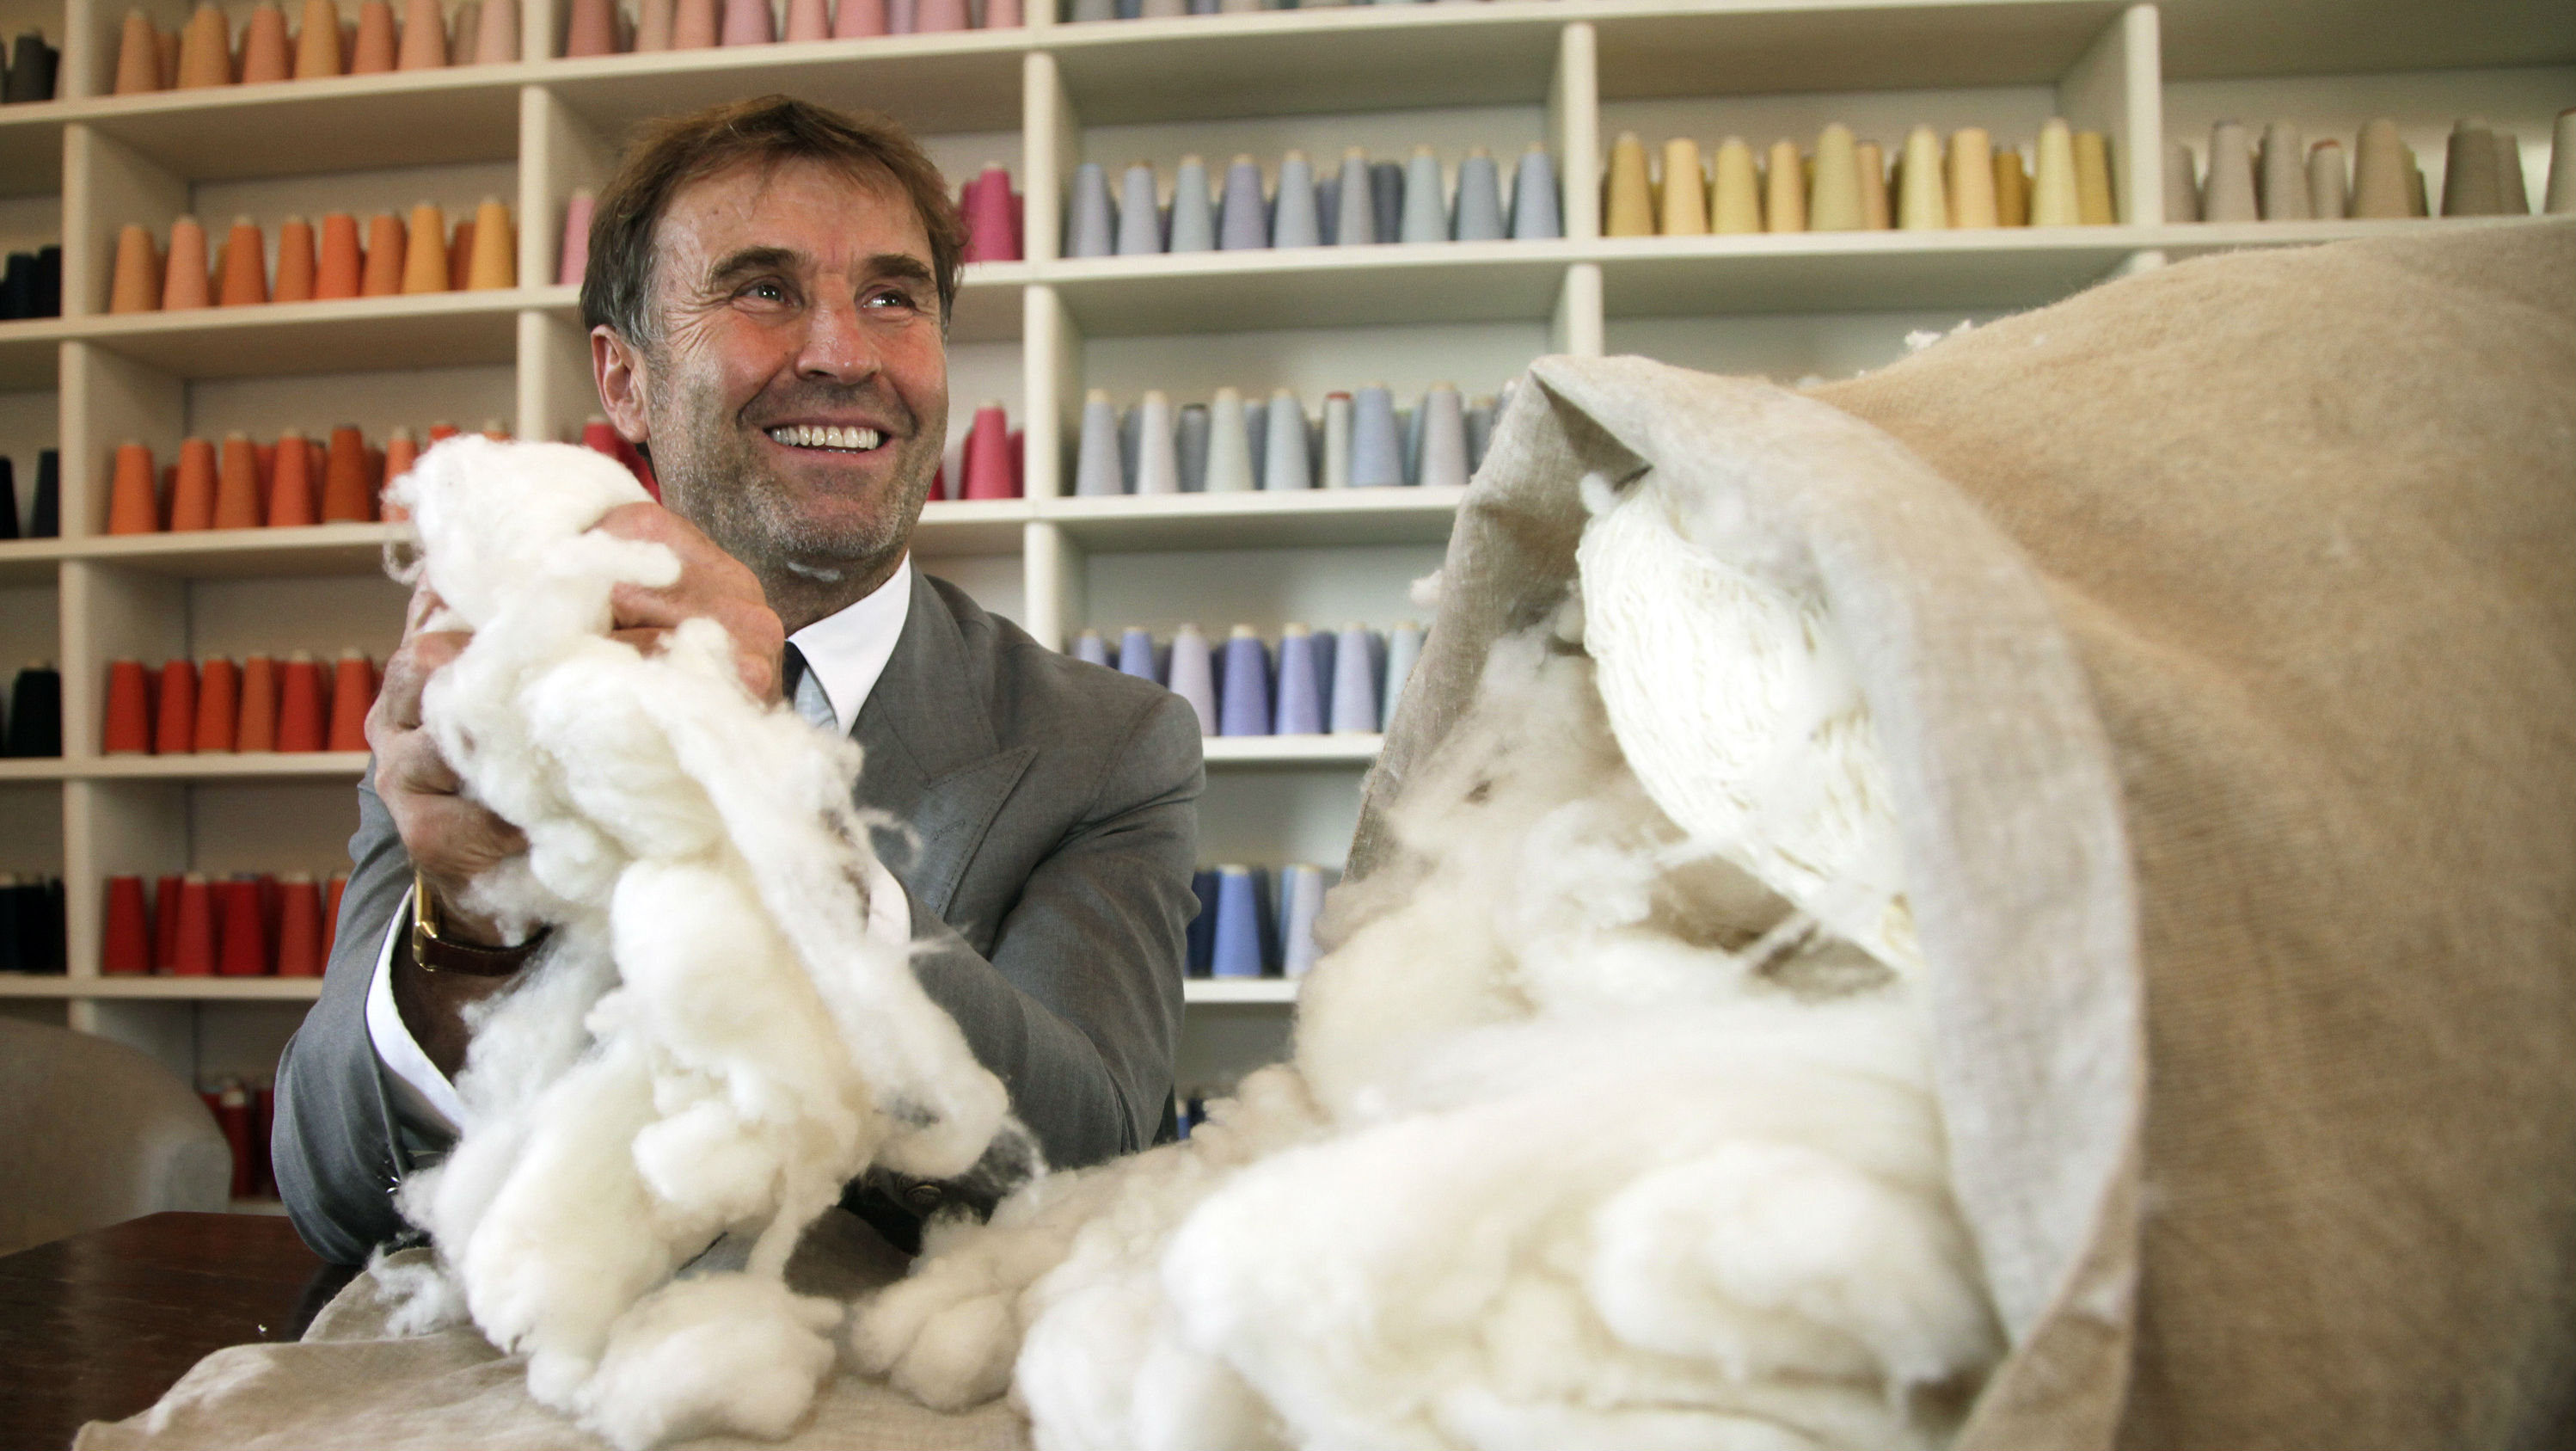 Italian clothing designer Brunello Cucinelli holds raw cashmere wool in the Umbrian village of Solomeo October 7, 2009. He has been called the King of Cashmere, an entrepreneur with the mind of a capitalist but the heart of a philosopher, the Don Qixote of Italy's luxury fashion world, an idealist madman. Brunello Cucinelli is anything but an orthodox businessman. But the double-digit revenue and profit growth his luxury fashion label has produced in the past three years would make any company turn asparagus green - one of his shades - with envy. Picture taken October 7, 2009. REUTERS/Alessandro Bianchi (ITALY)